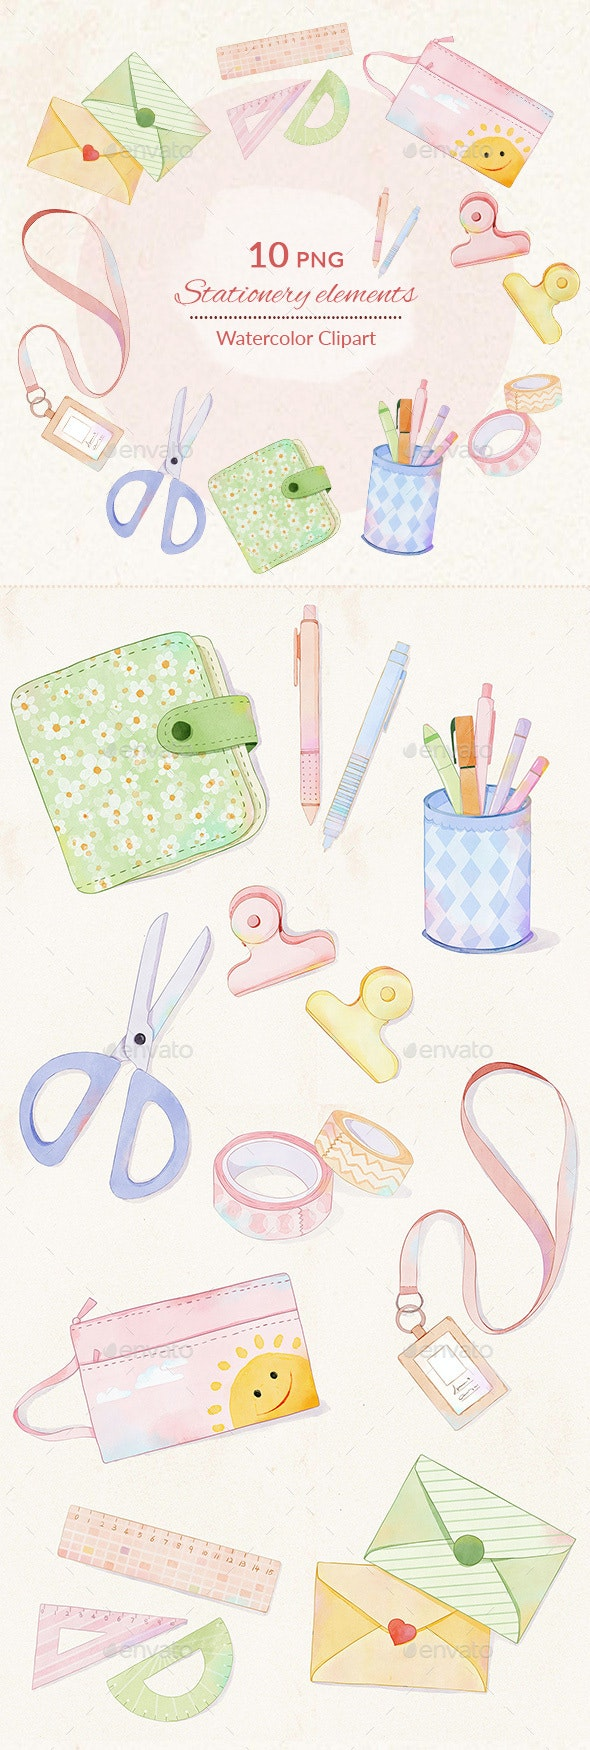 Stationery Watercolor Digital Illustration Clipart PNG - Objects Illustrations